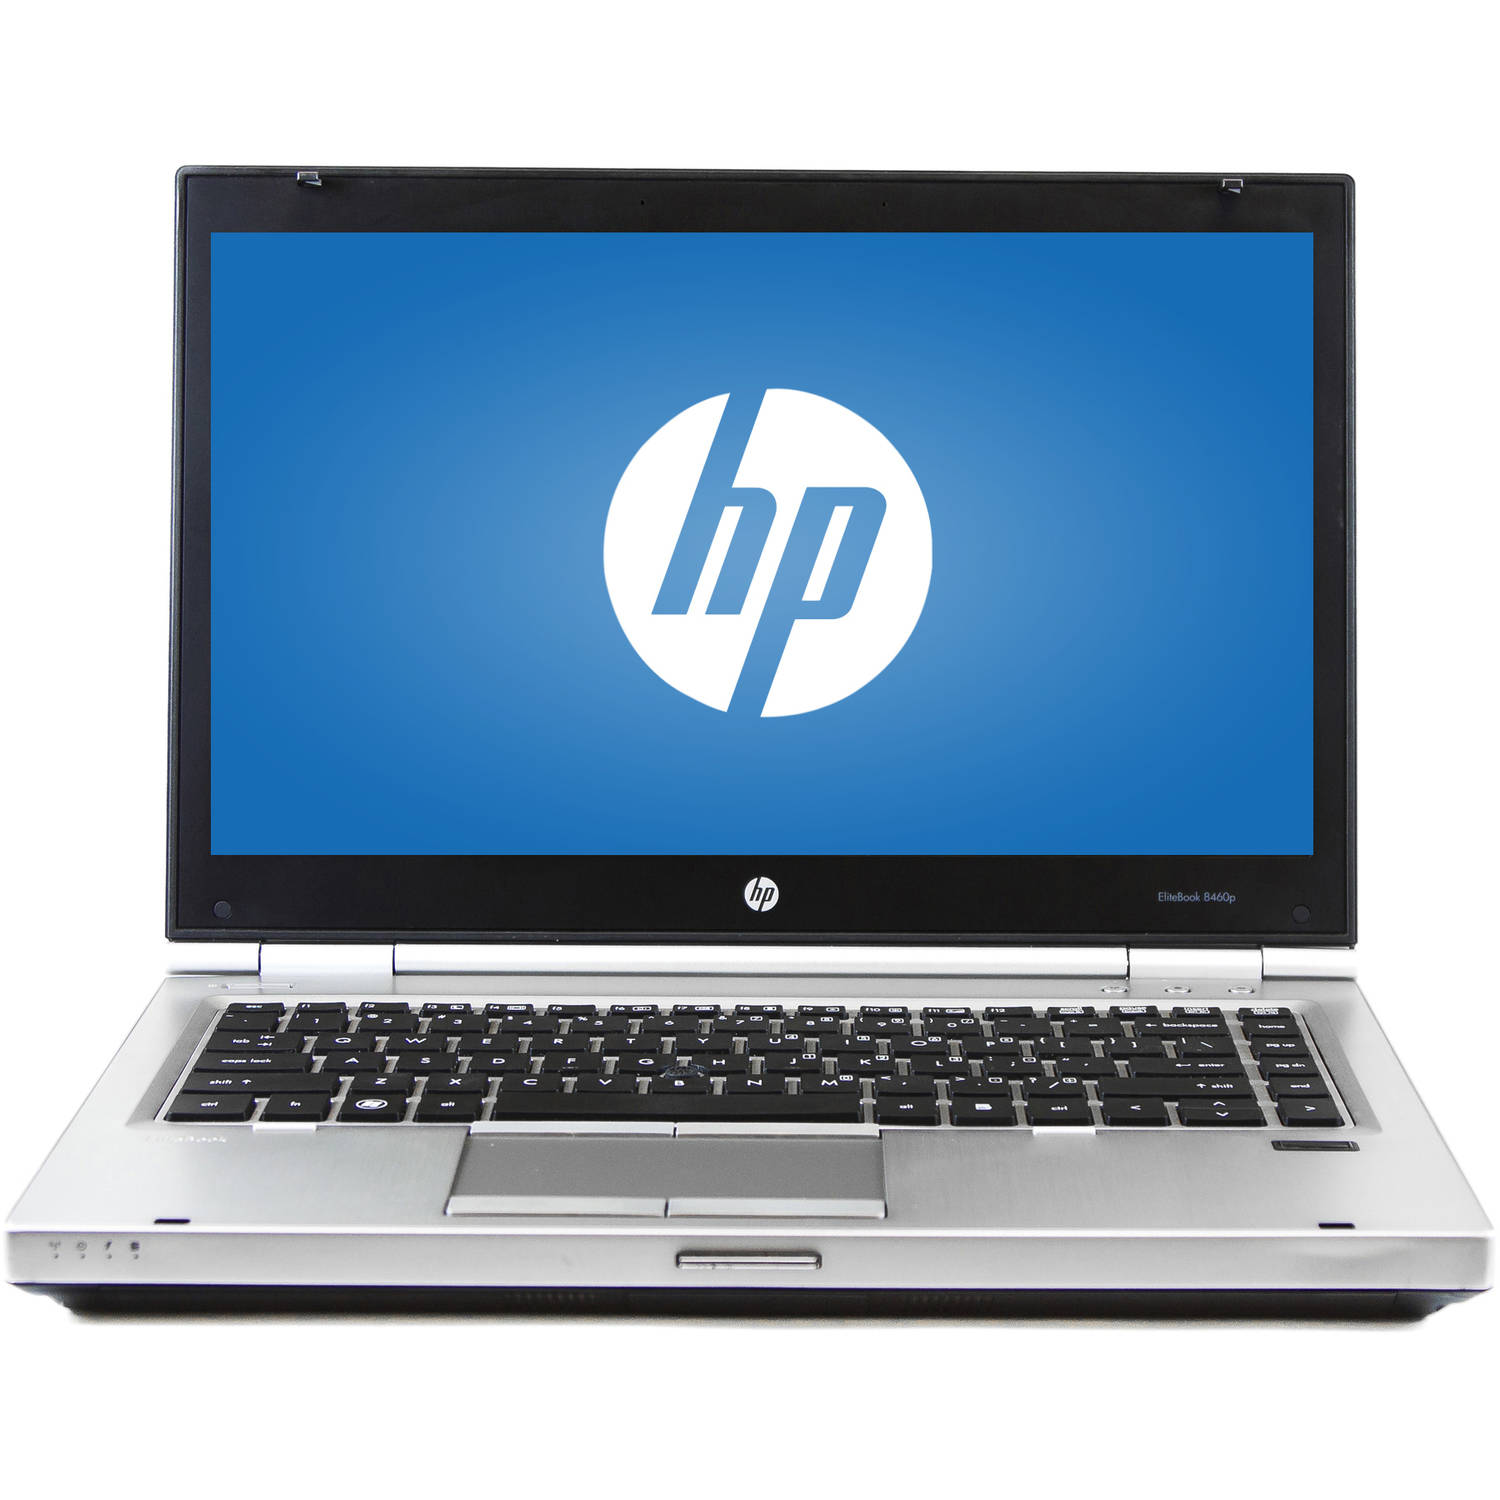 Hp Elitebook 8460p Product Features